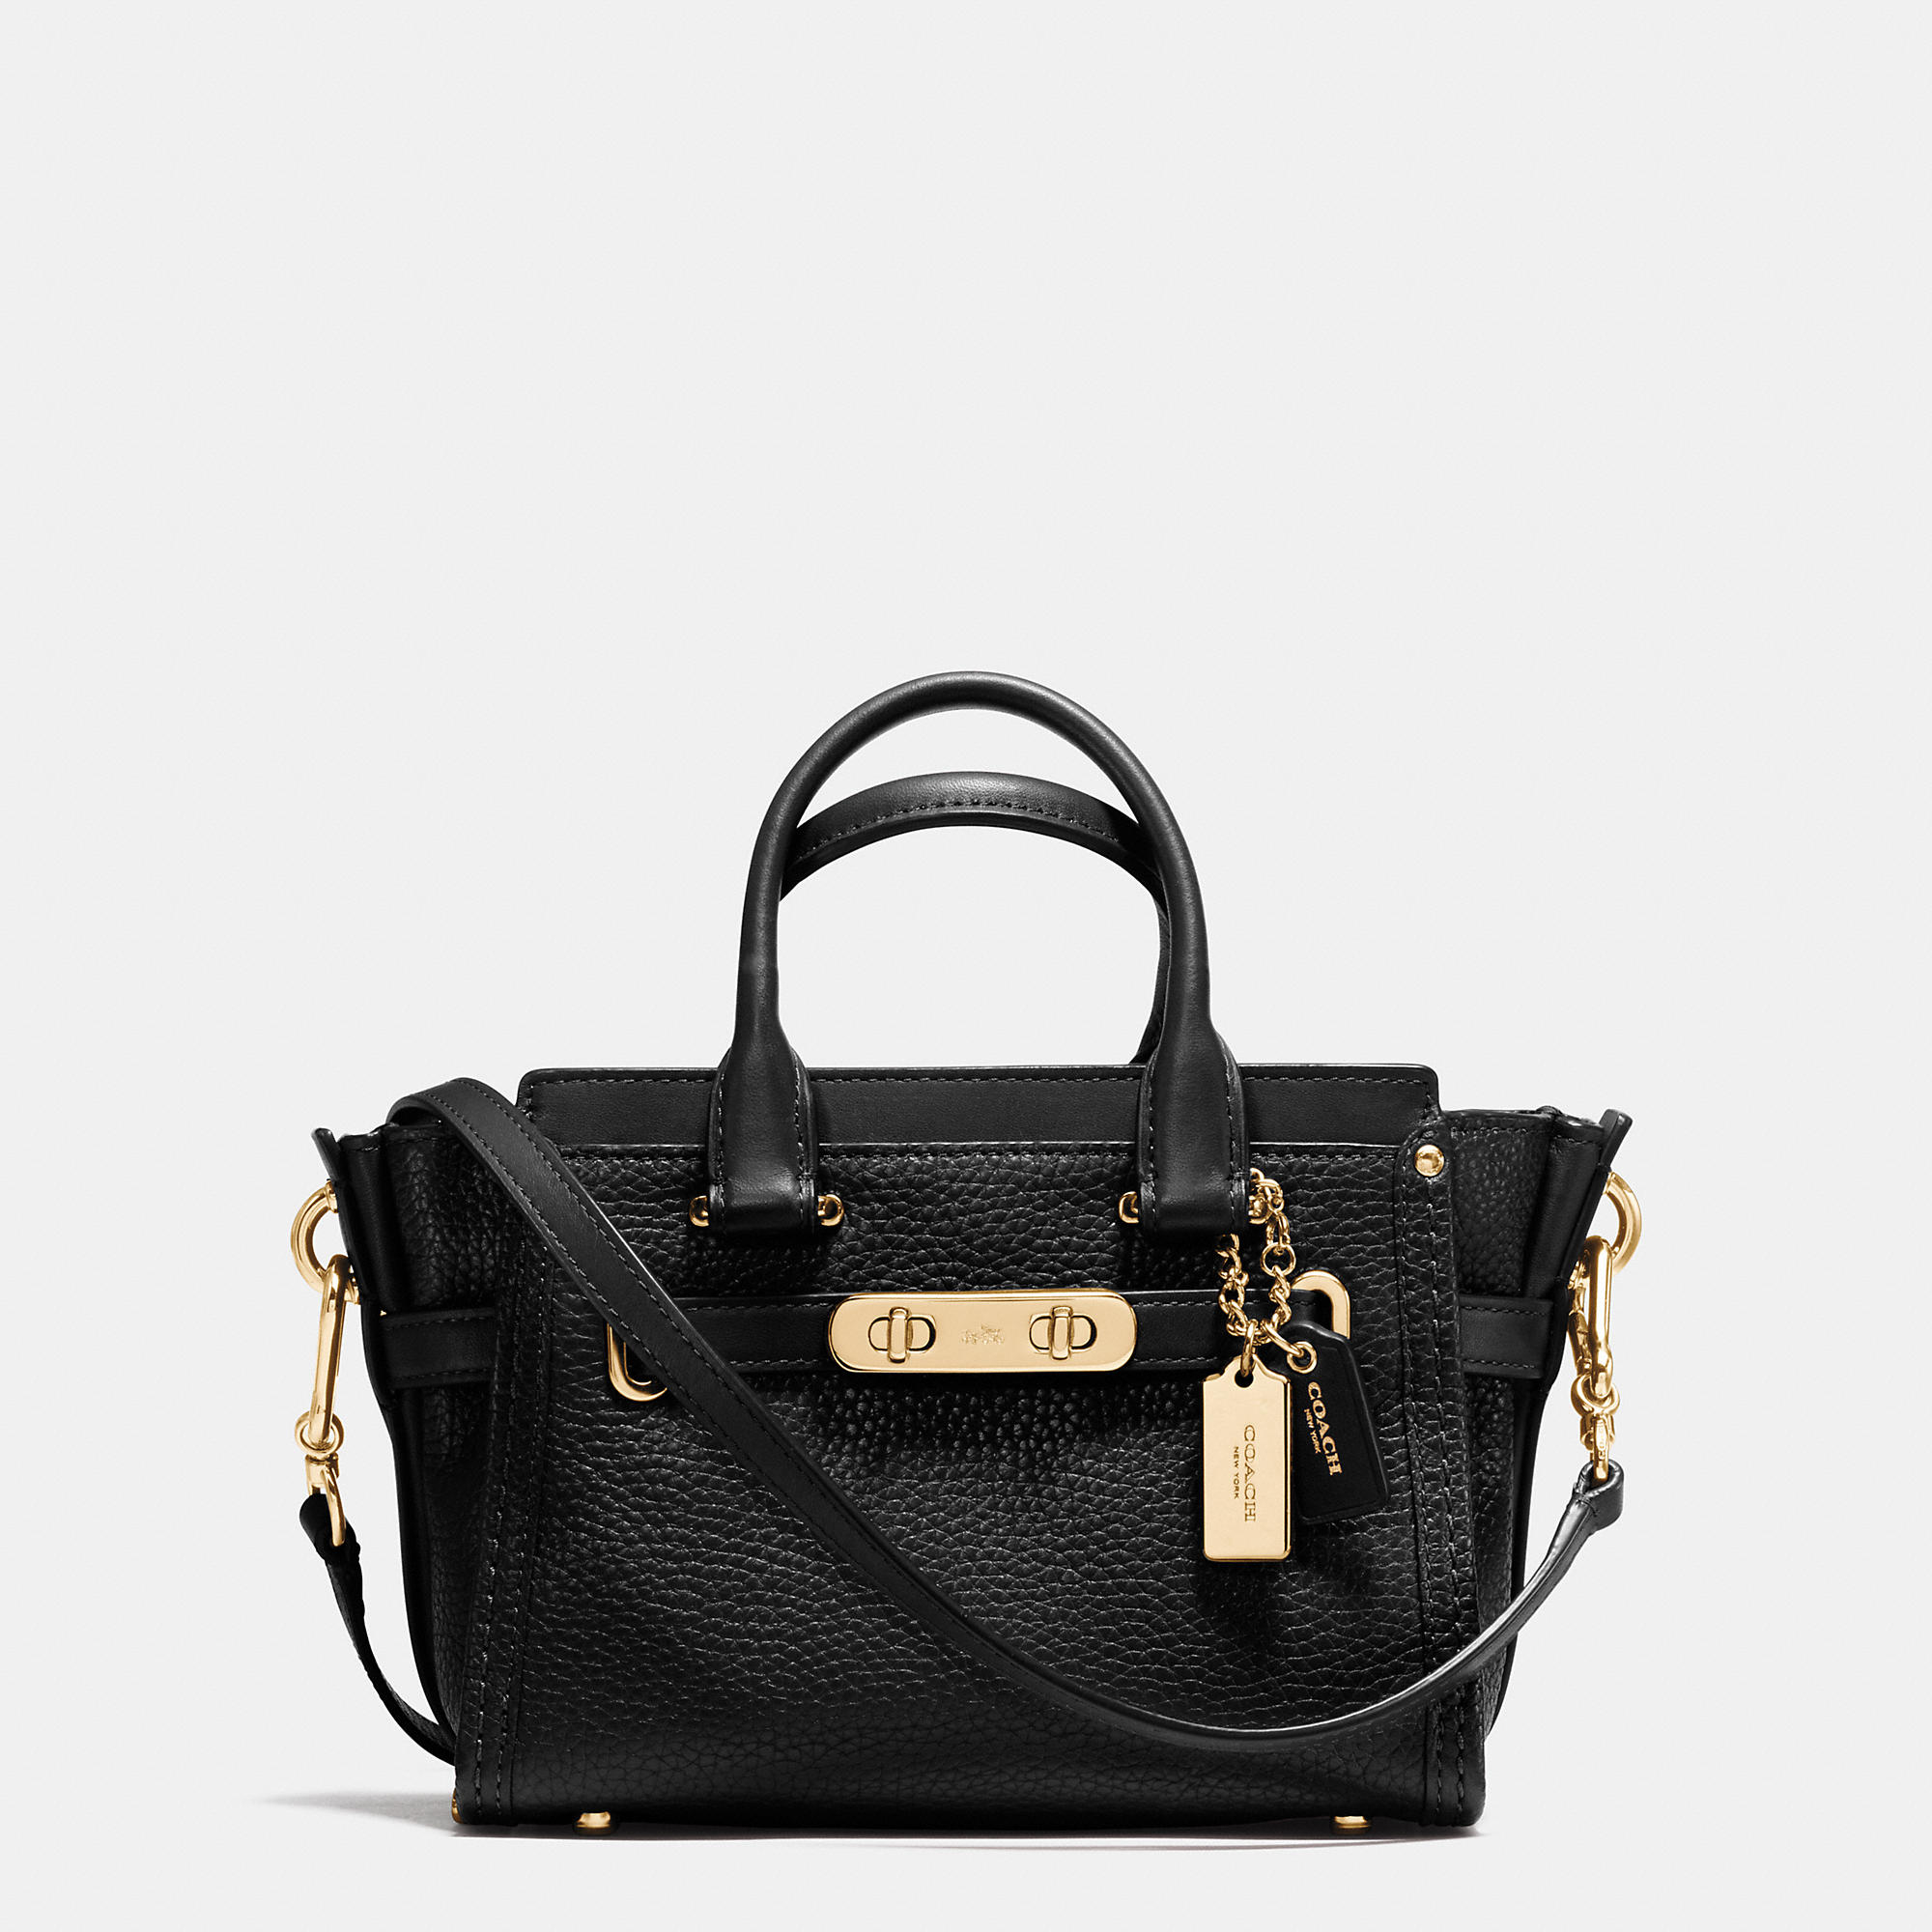 Lyst - Coach Swagger 20 Pebbled-Leather Shoulder Bag in Black